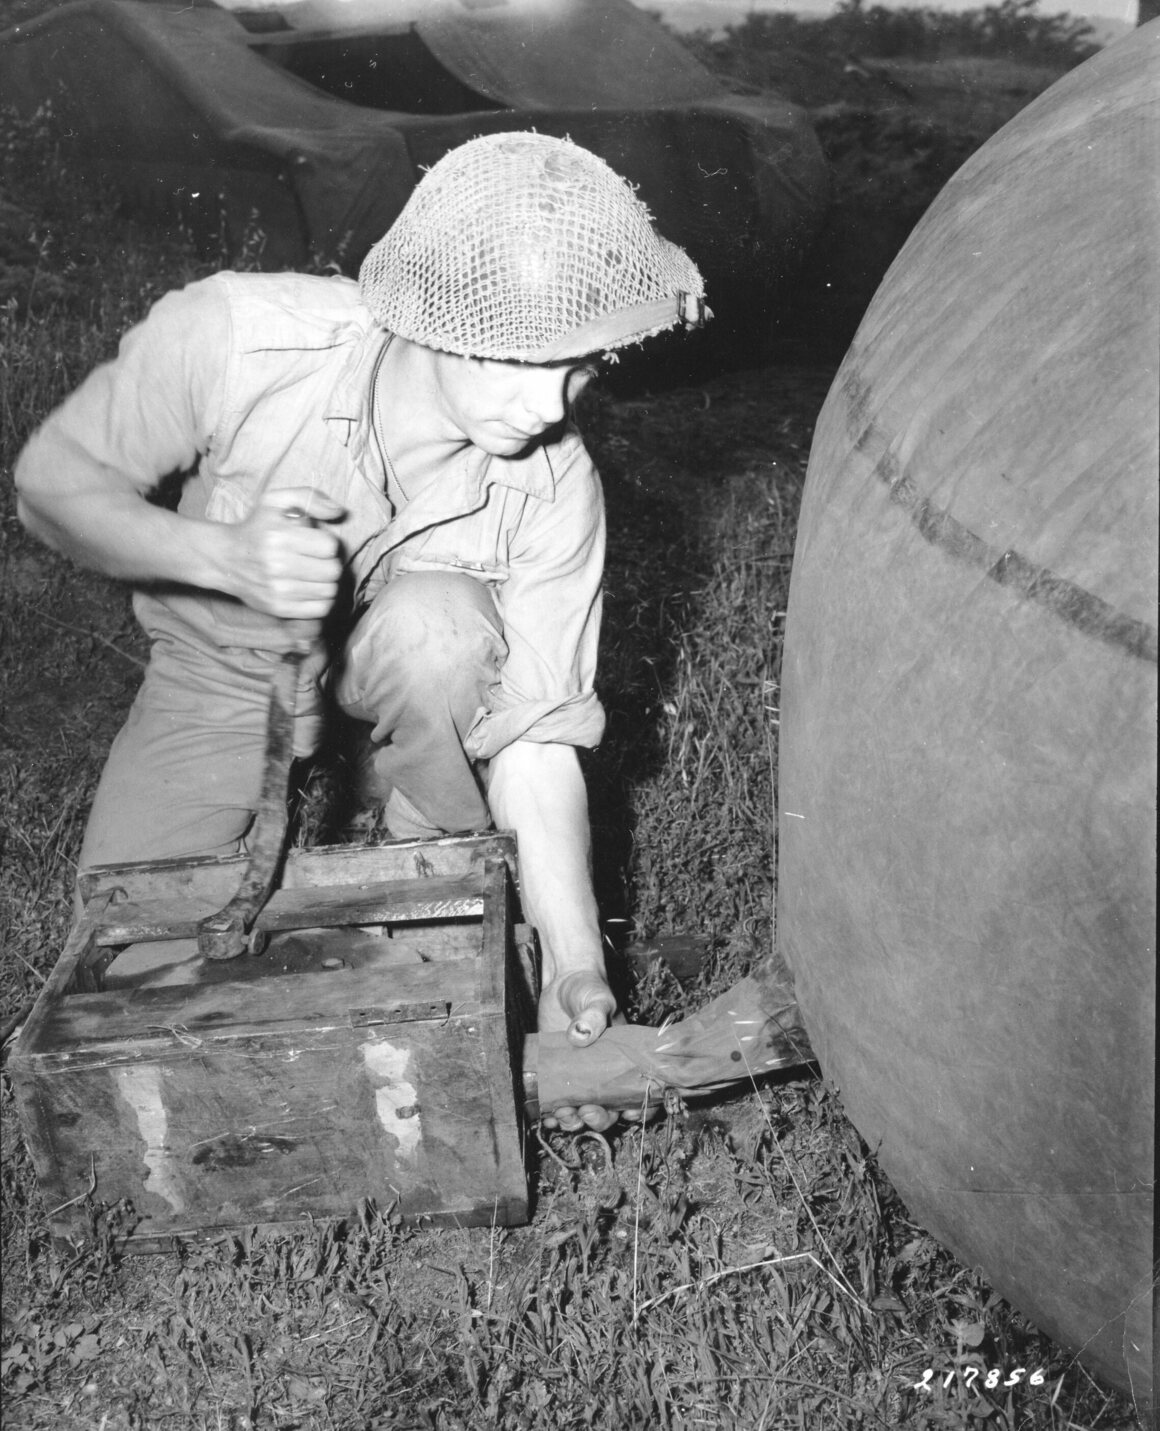 A British army engineer uses a forge pump to inflate the turret of a rubber dummy tank. The tanks were designed and used by the British to simulate tank positions in the field. Taken in Italy in 1944.